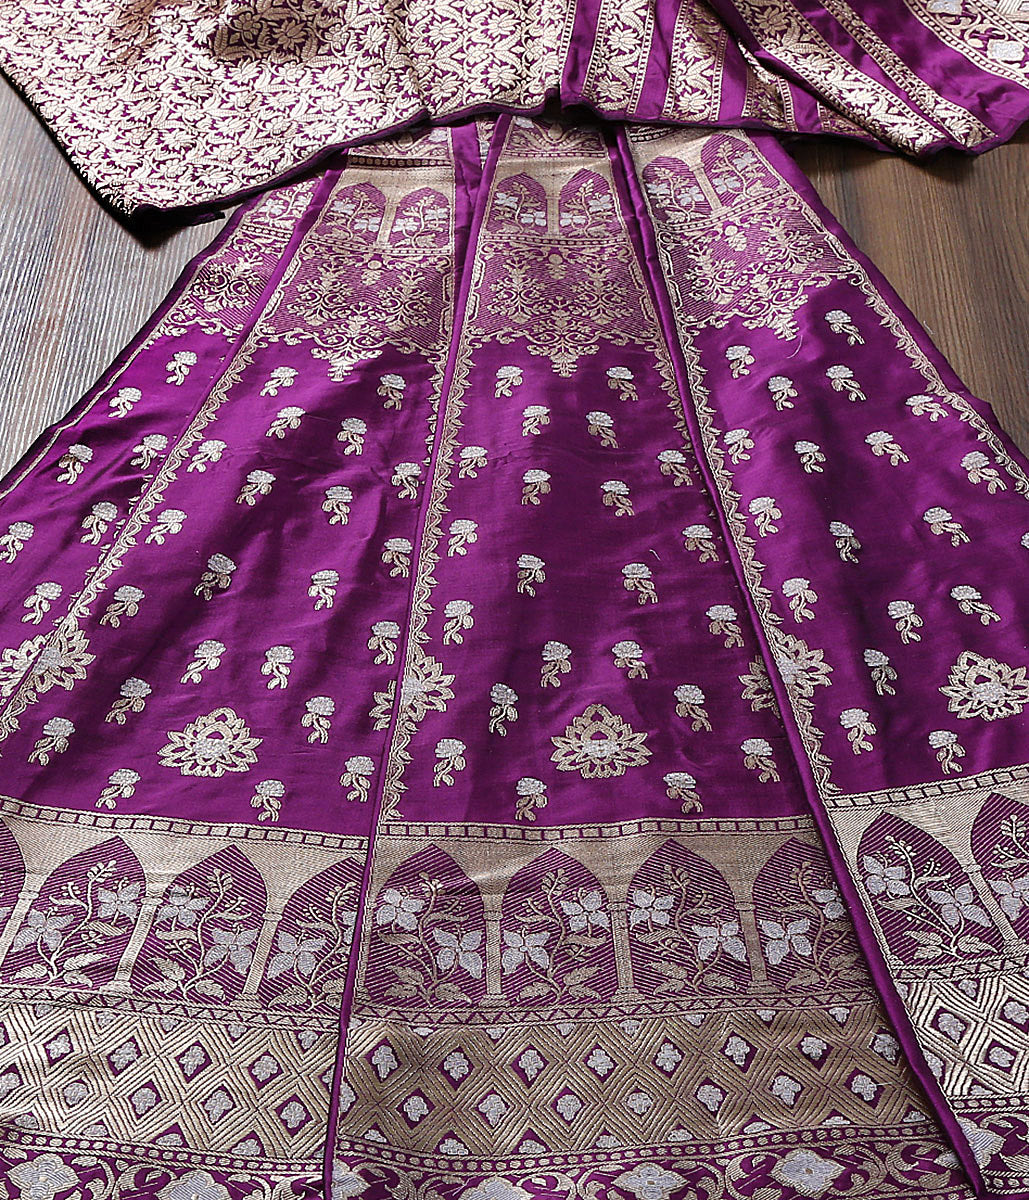 Handwoven Banarasi Katan Silk Lehenga in Wine Color